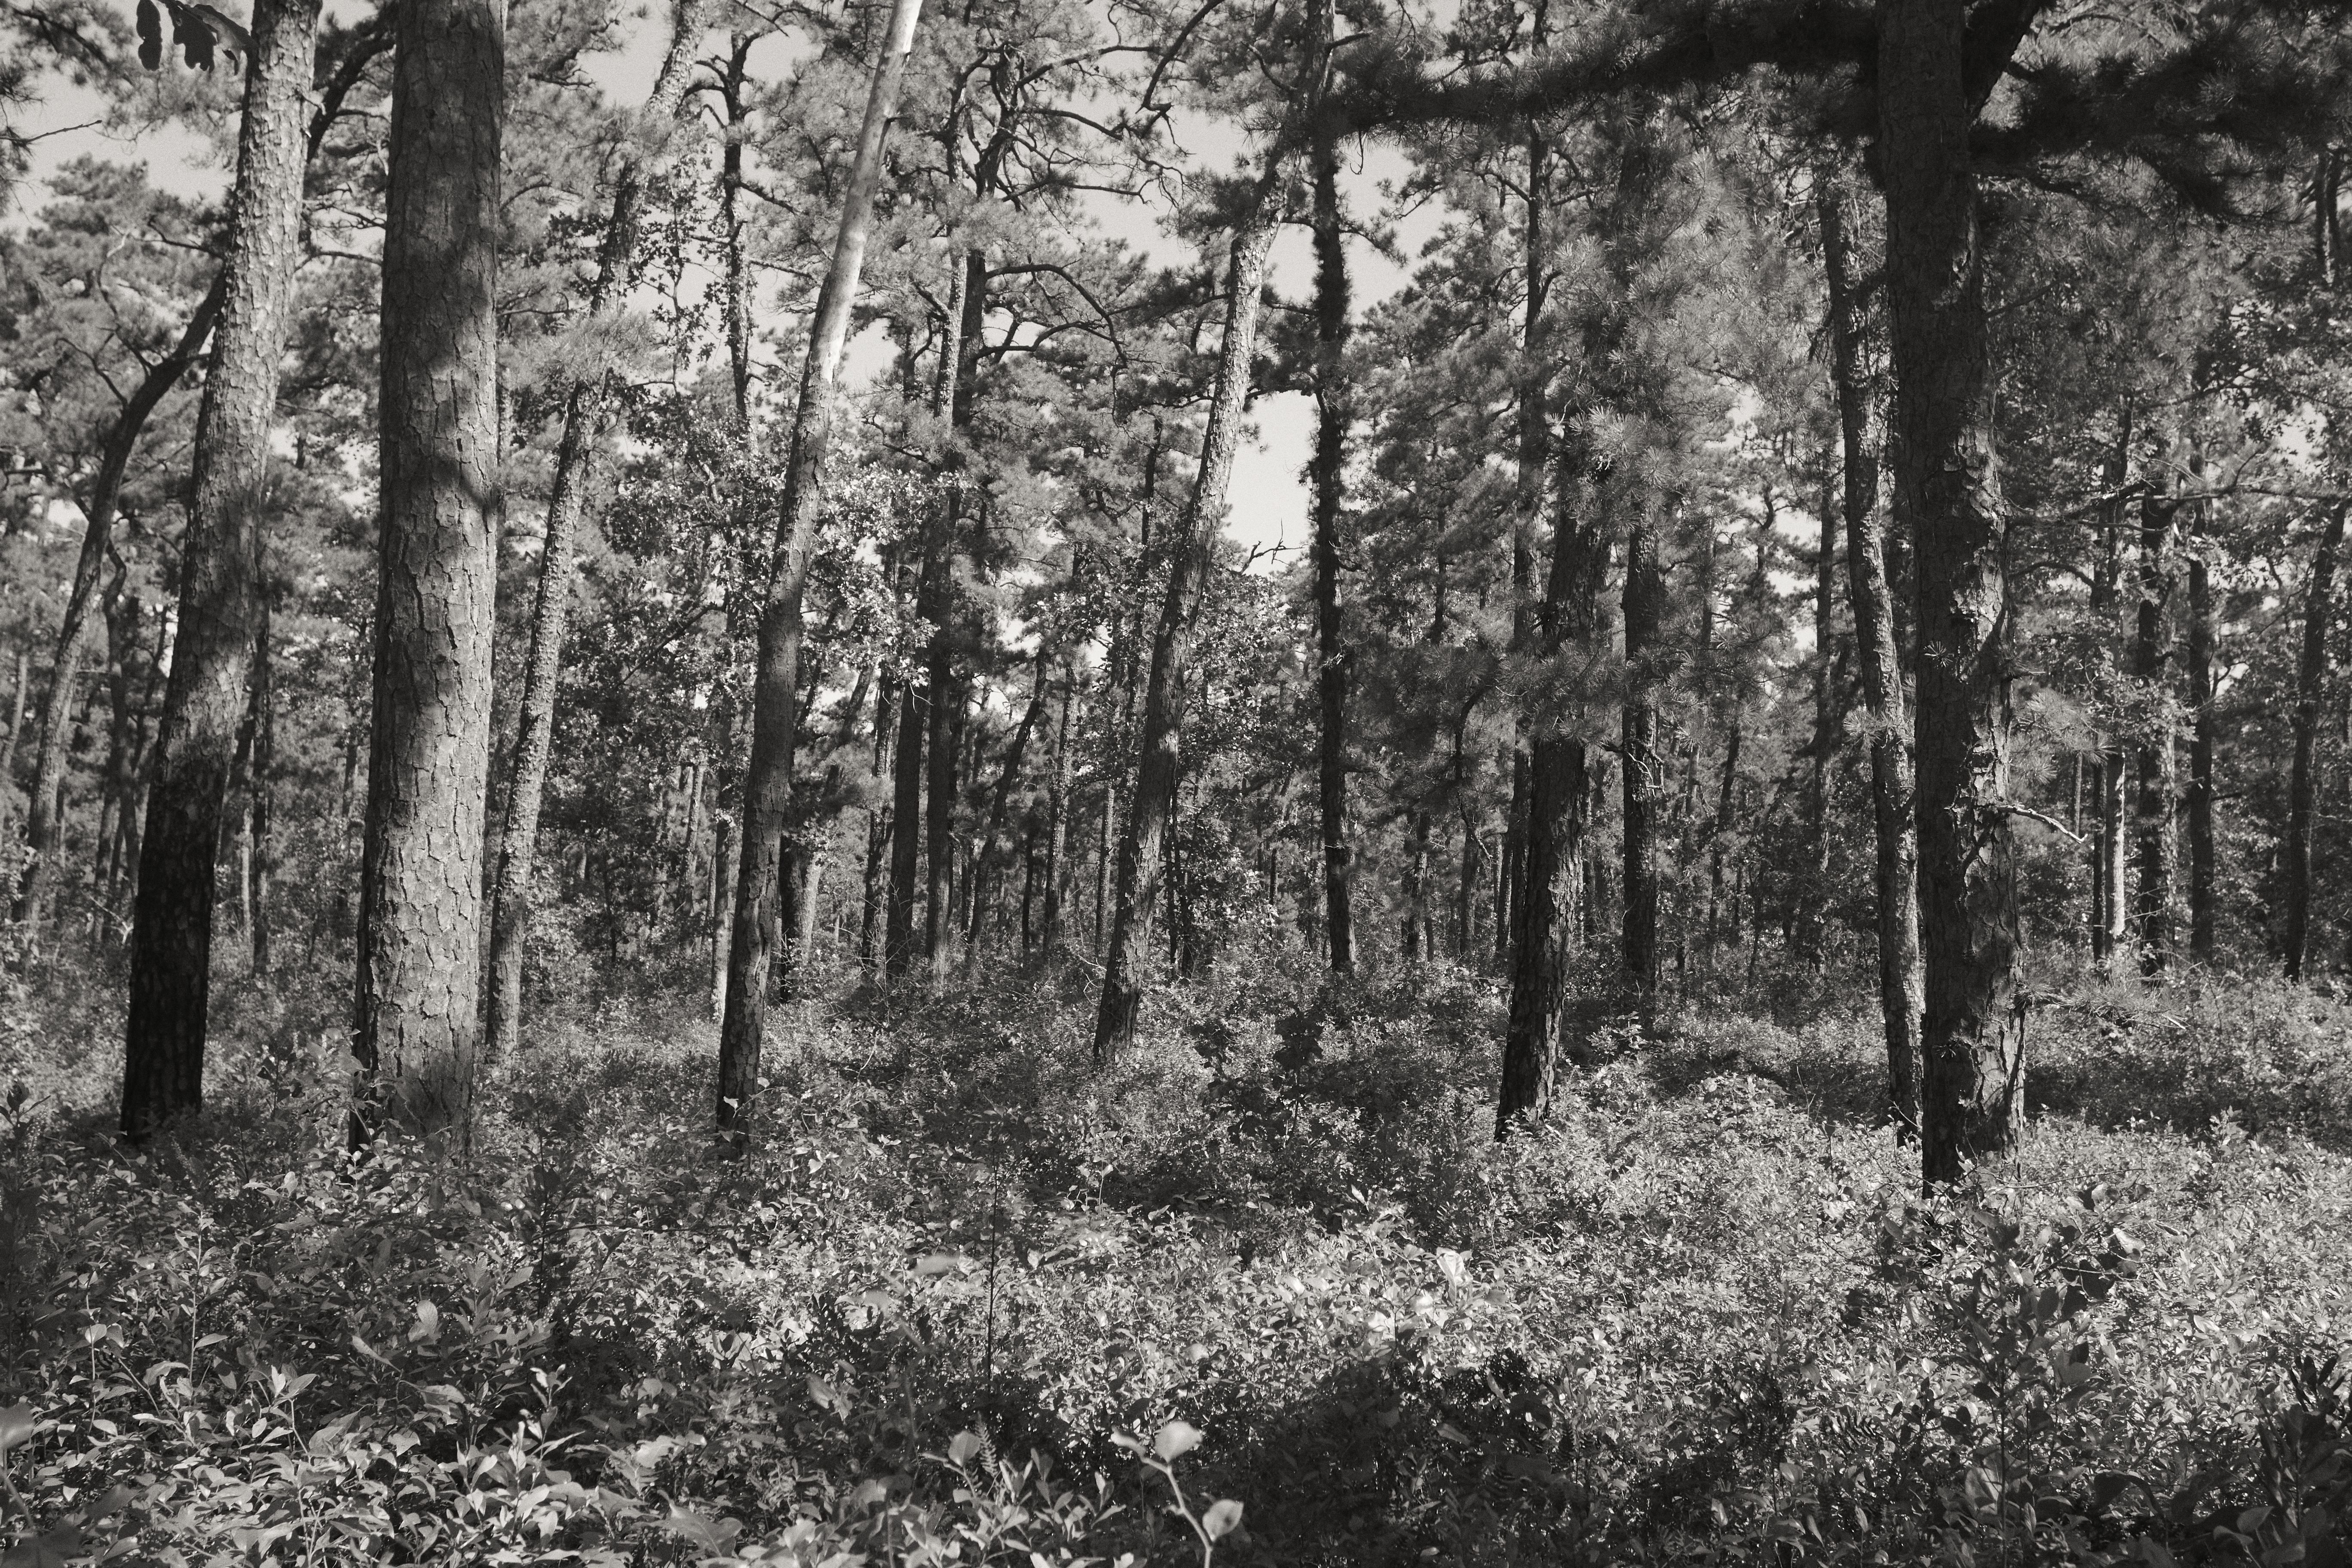 Black and white image of pine trees in Pine Barrens.